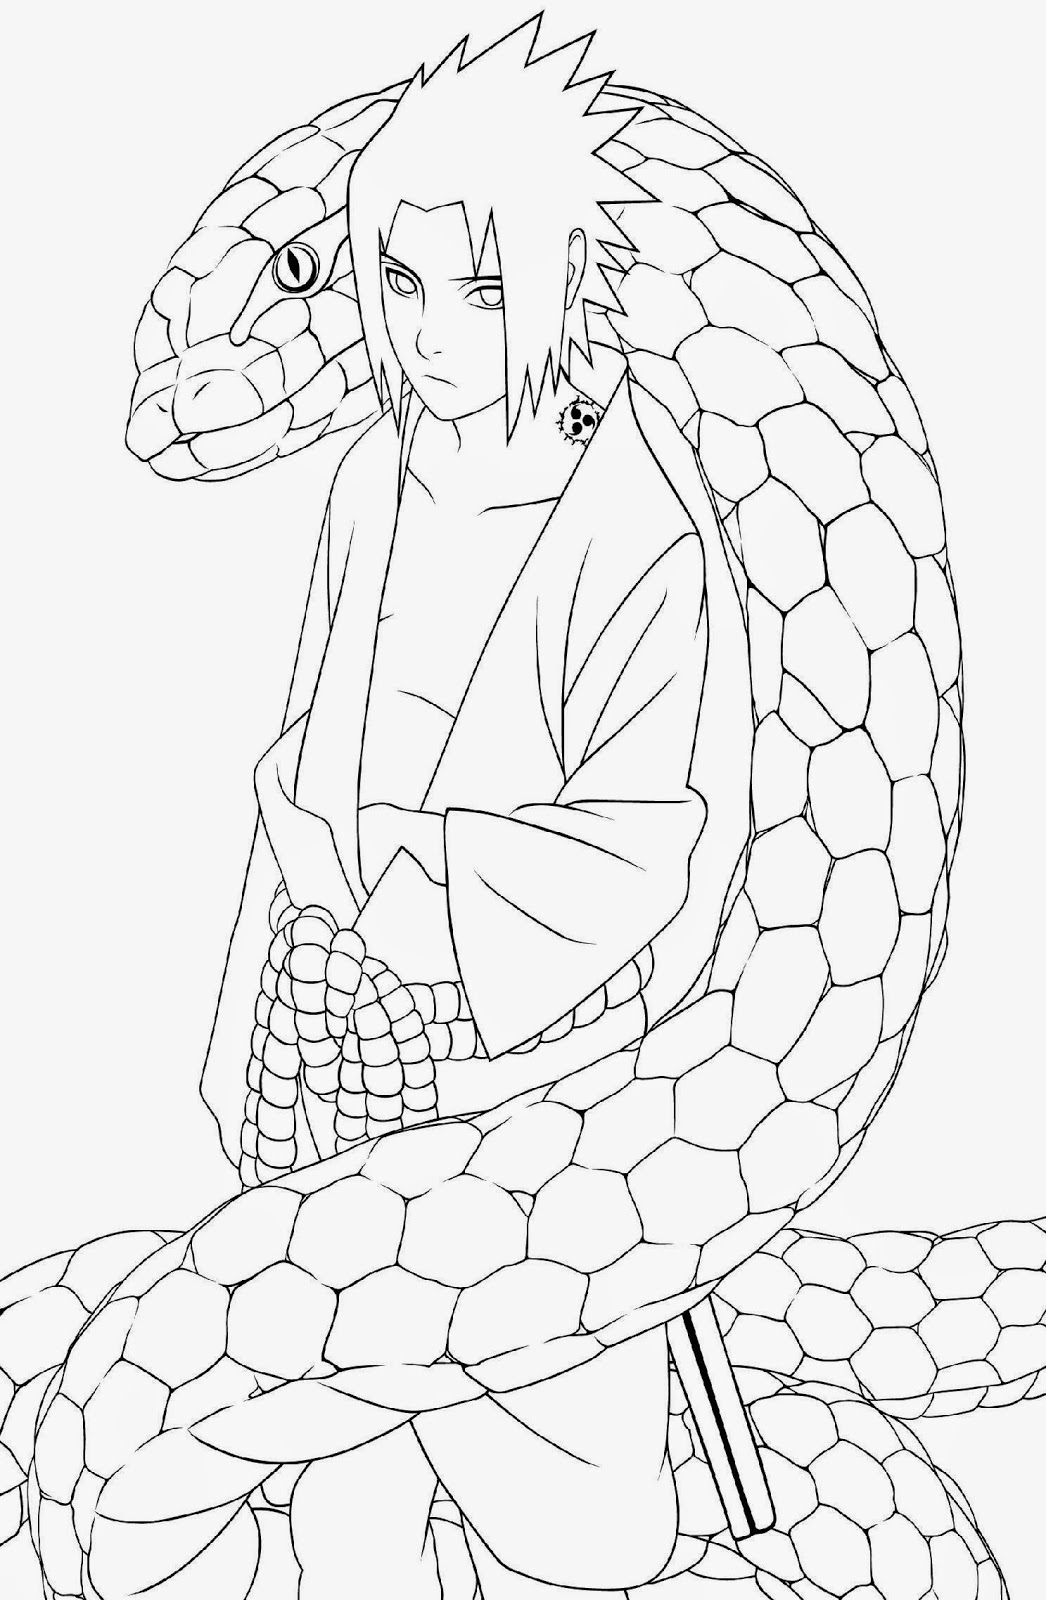 Naruto coloring sheets free coloring sheet for Naruto coloring pages online